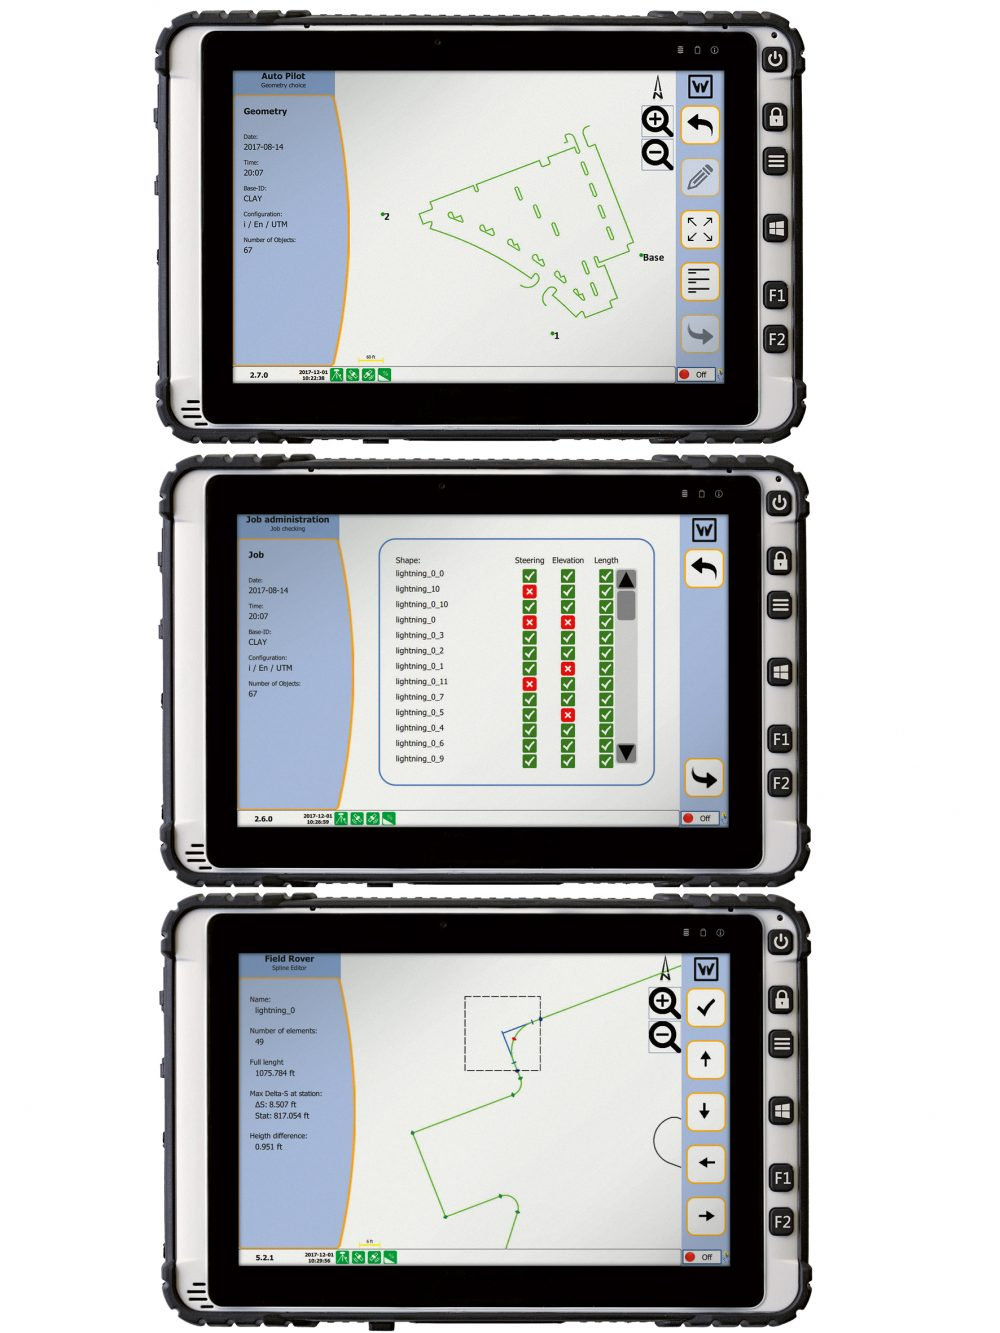 The 3D control system comprises a computer integrated into the paver and a tablet attached to the Field Rover survey pole. Two GPS receivers mounted on the machine communicate with a GPS reference station at the job site.